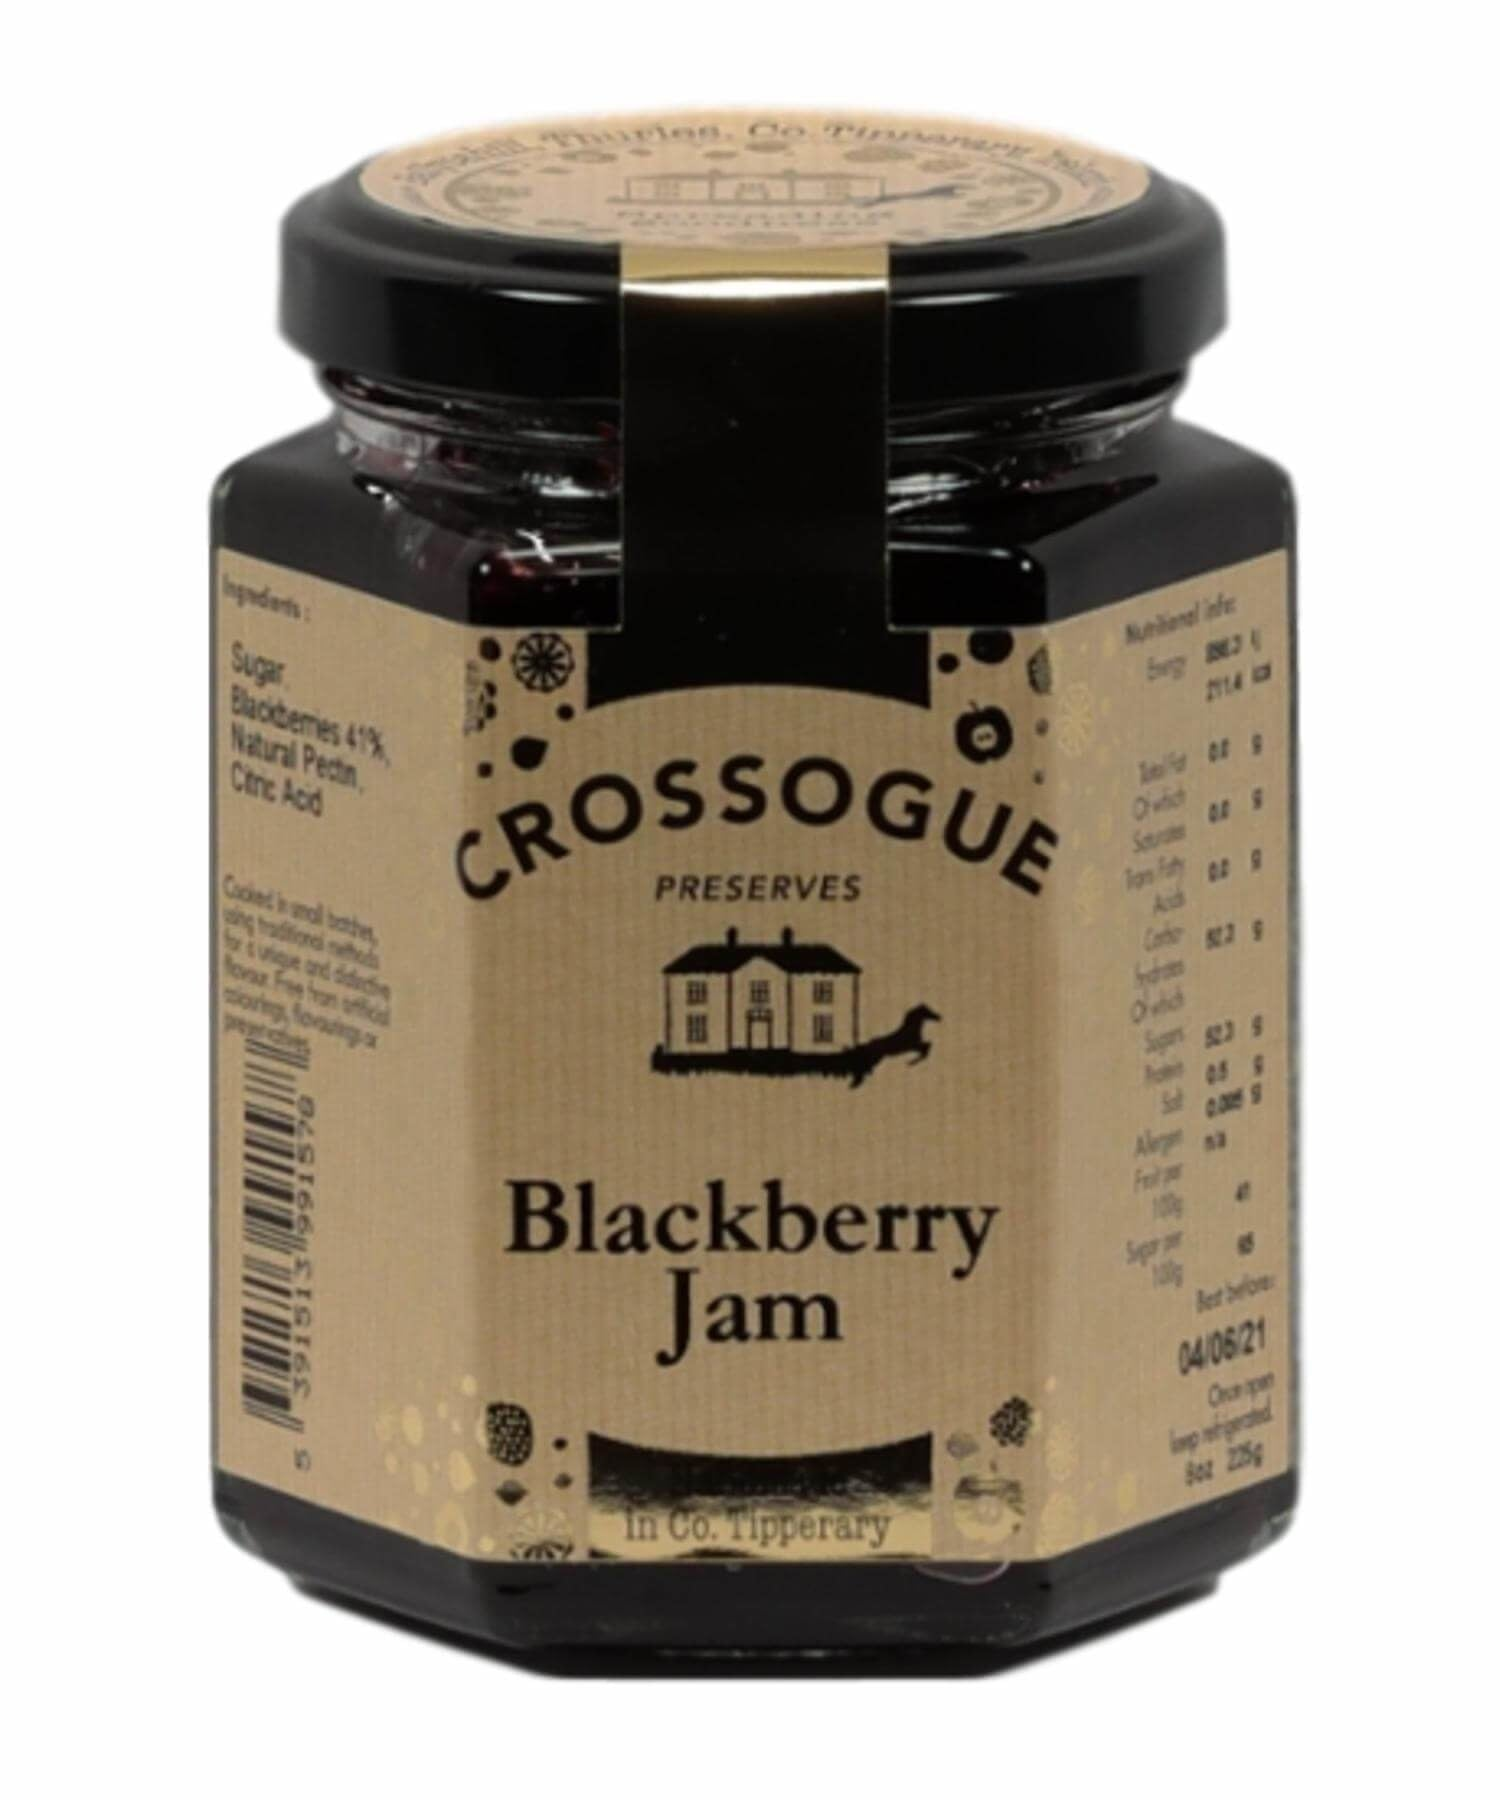 Blackberry Jam - [Crossogue] - Food Gifts - Irish Gifts